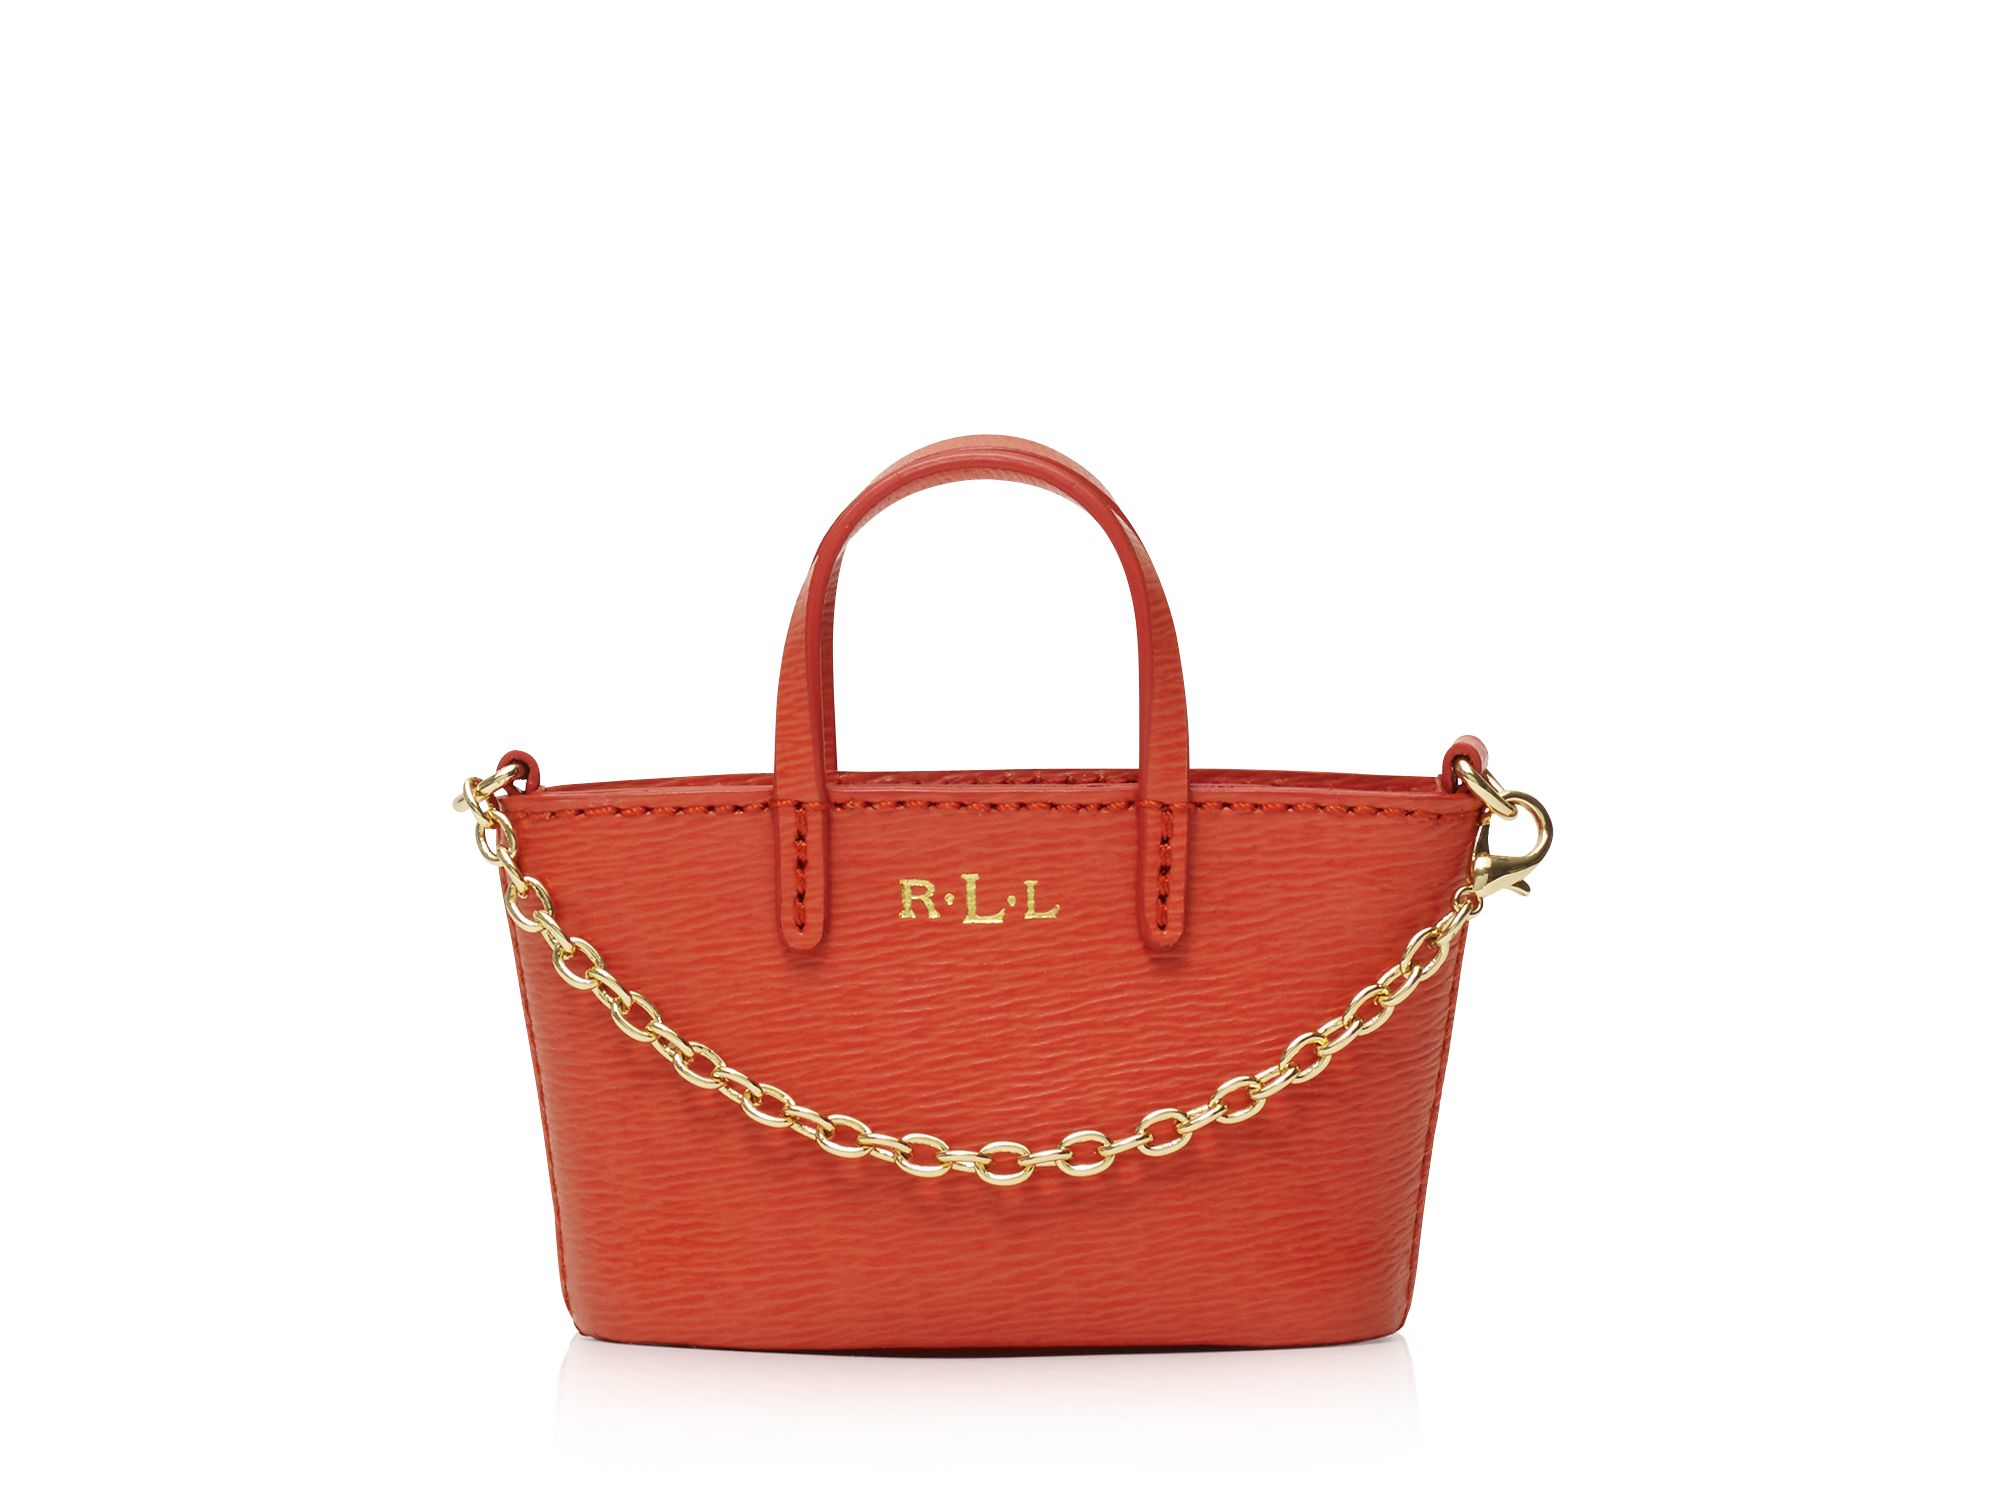 Lyst - Ralph Lauren Lauren Mini Tote Bag Charm in Red 00c2a957f8206